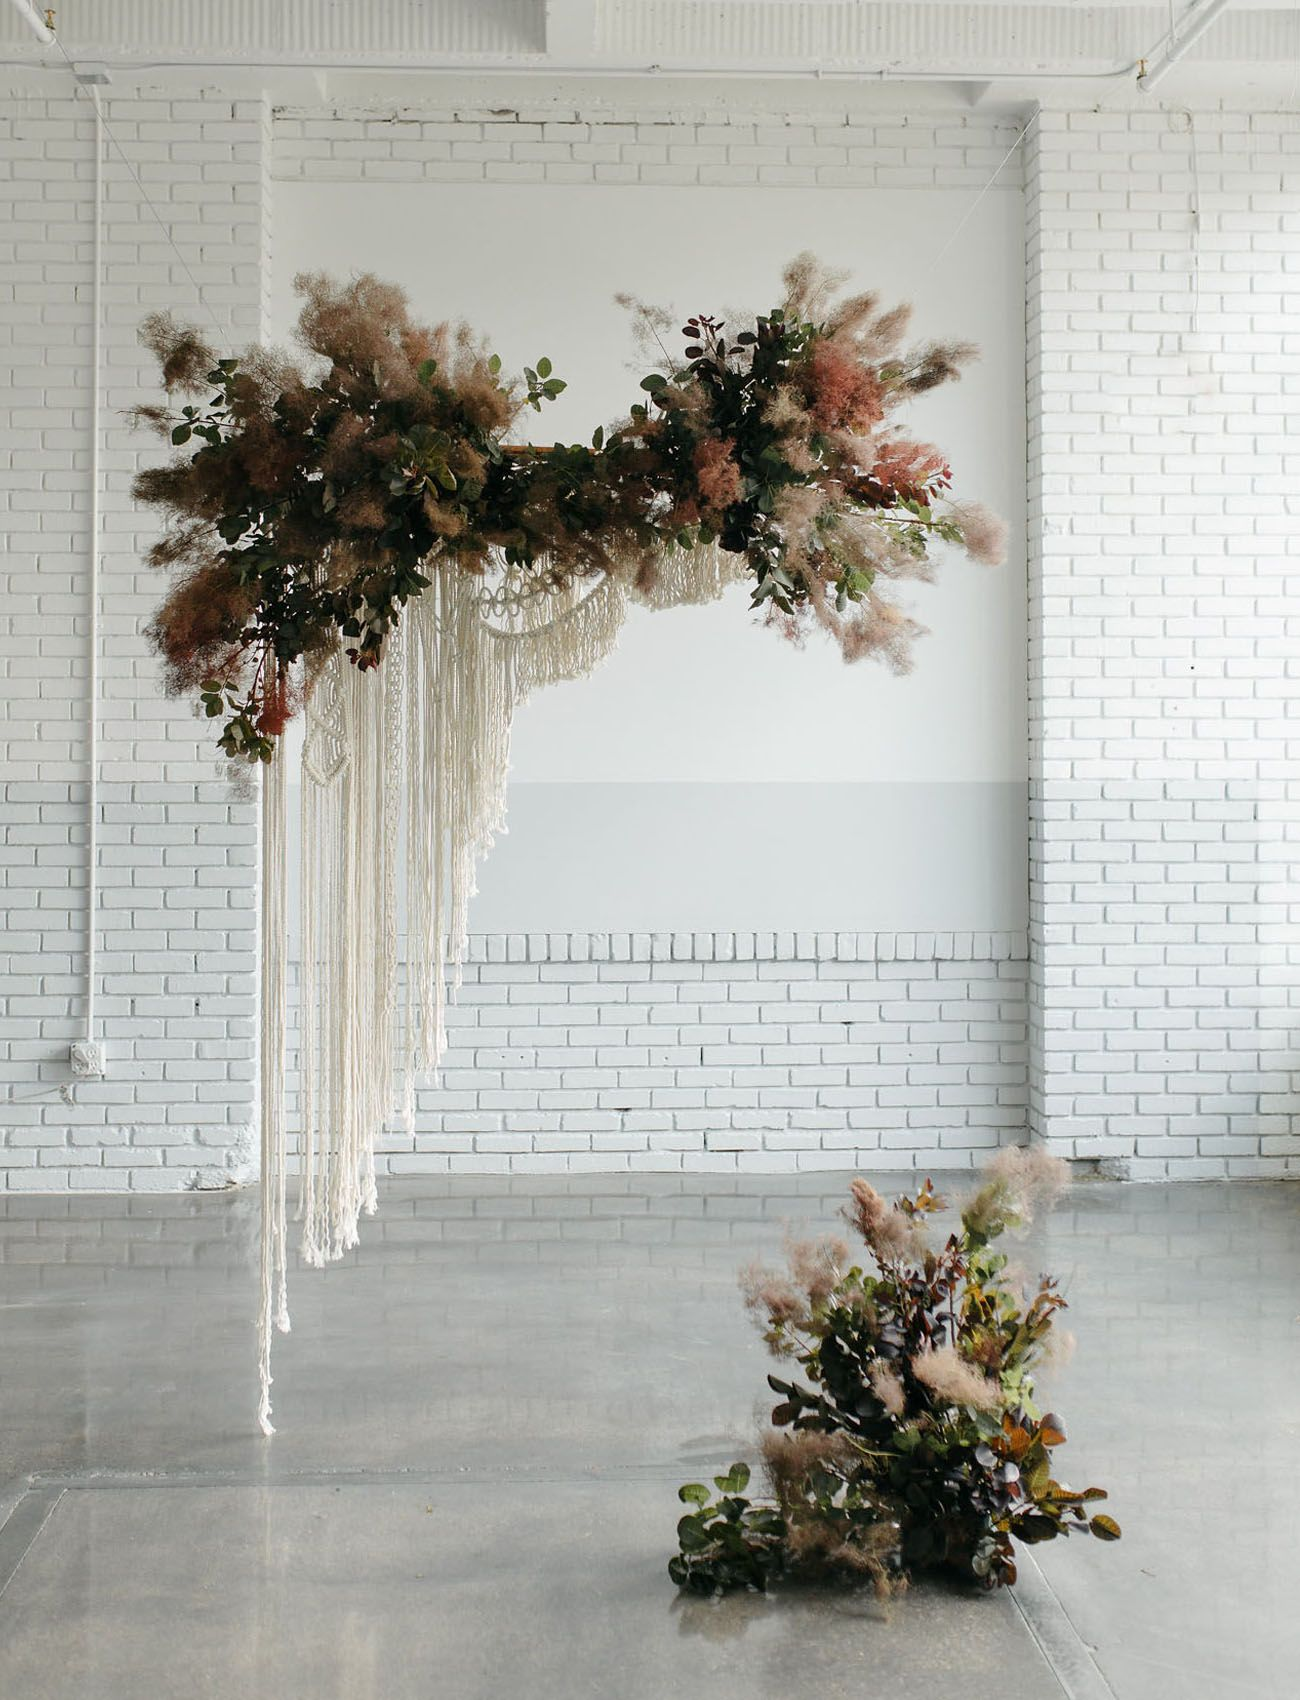 Understated Elegance: Modern Macramé + Matte Black Wedding Inspiration #decorationevent